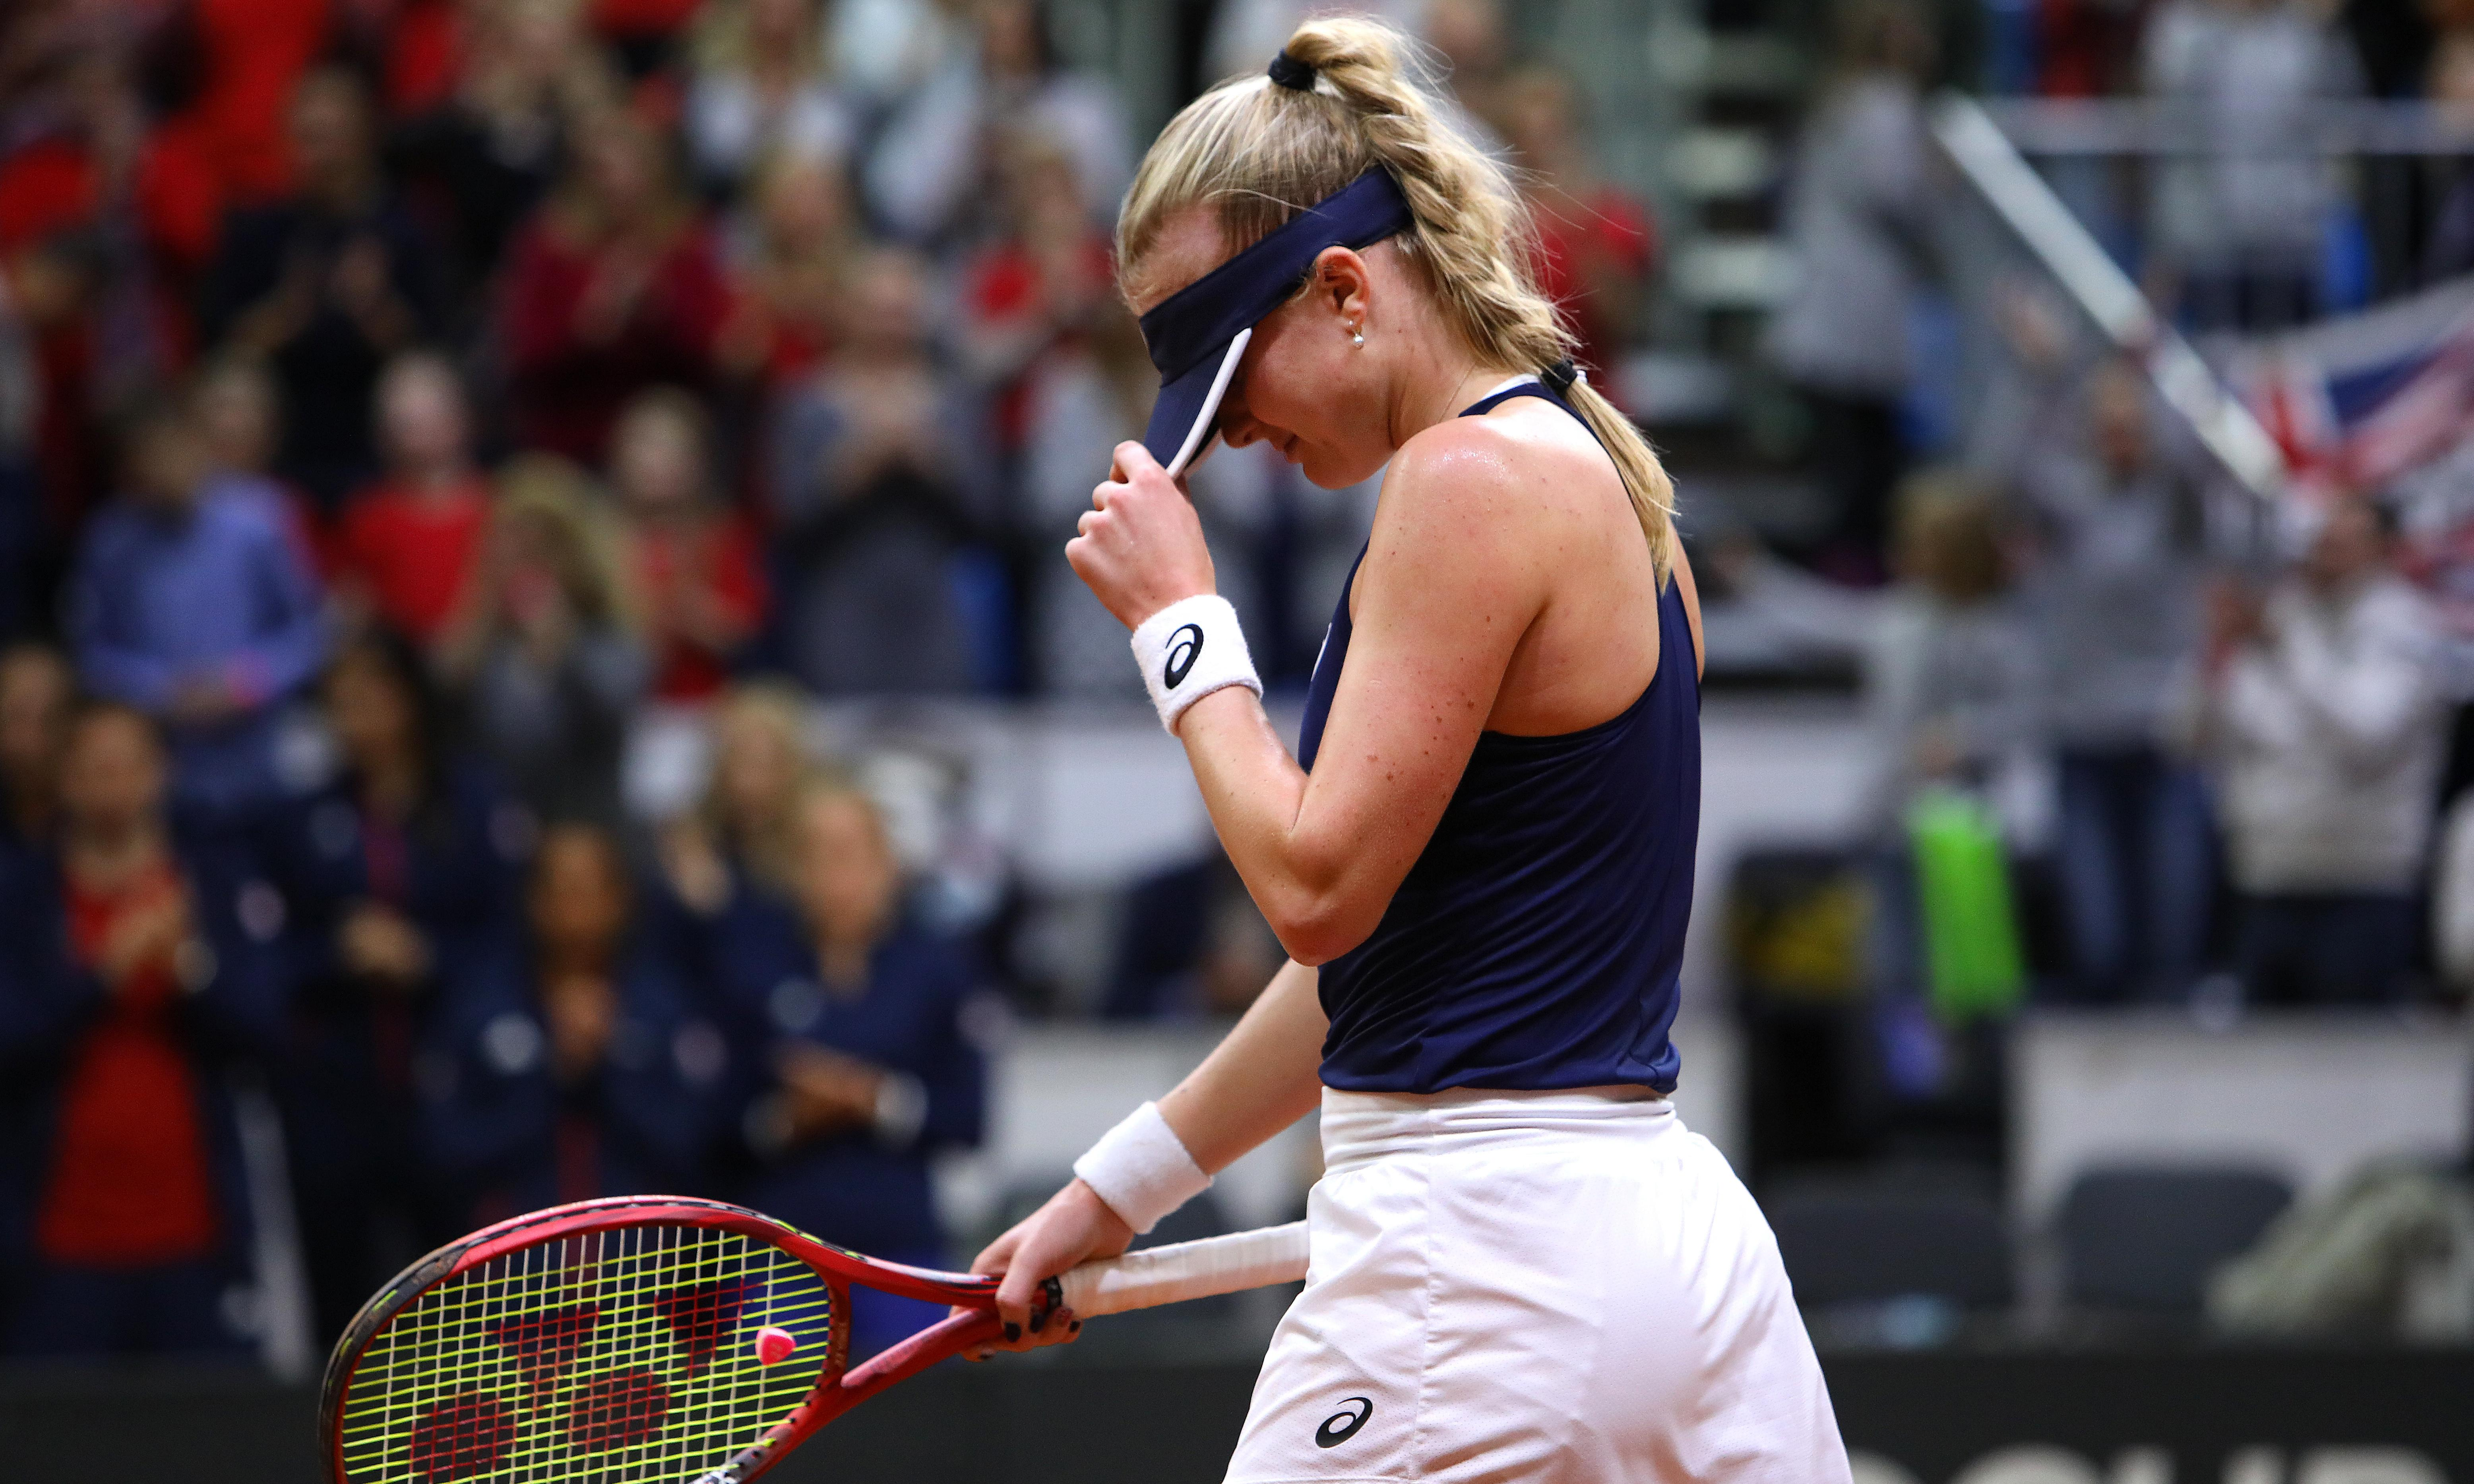 Harriet Dart succumbs to Slovaks as GB defeated in Fed Cup qualifier